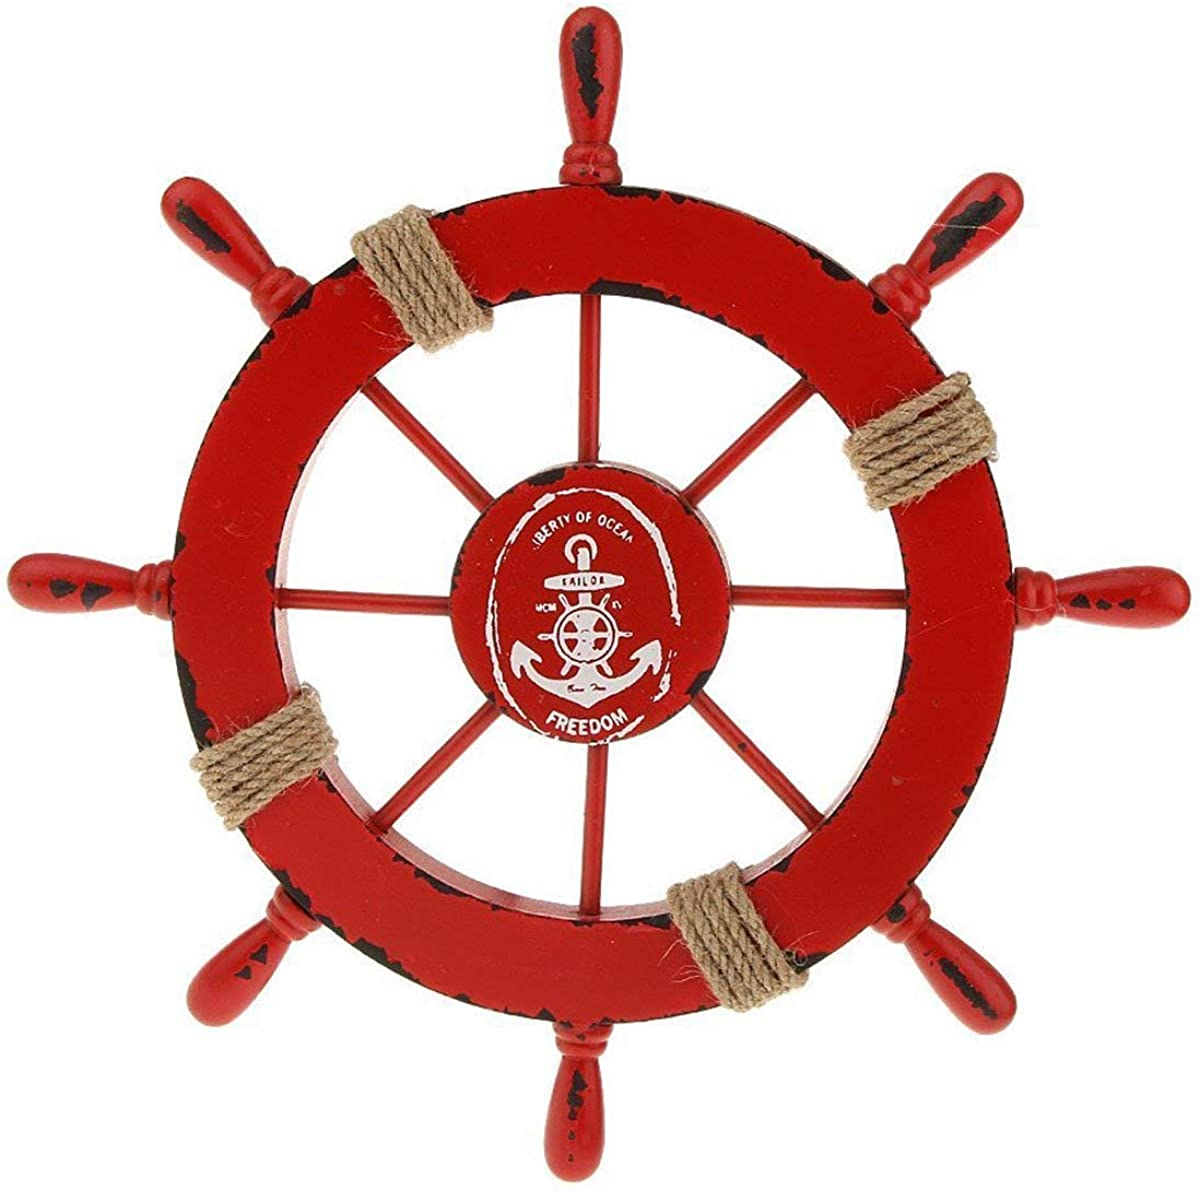 FRECI Nautical Bathroom Accessories Wooden Beach Boat Ship Steering Wheel Bedroom Wall Decor - Red